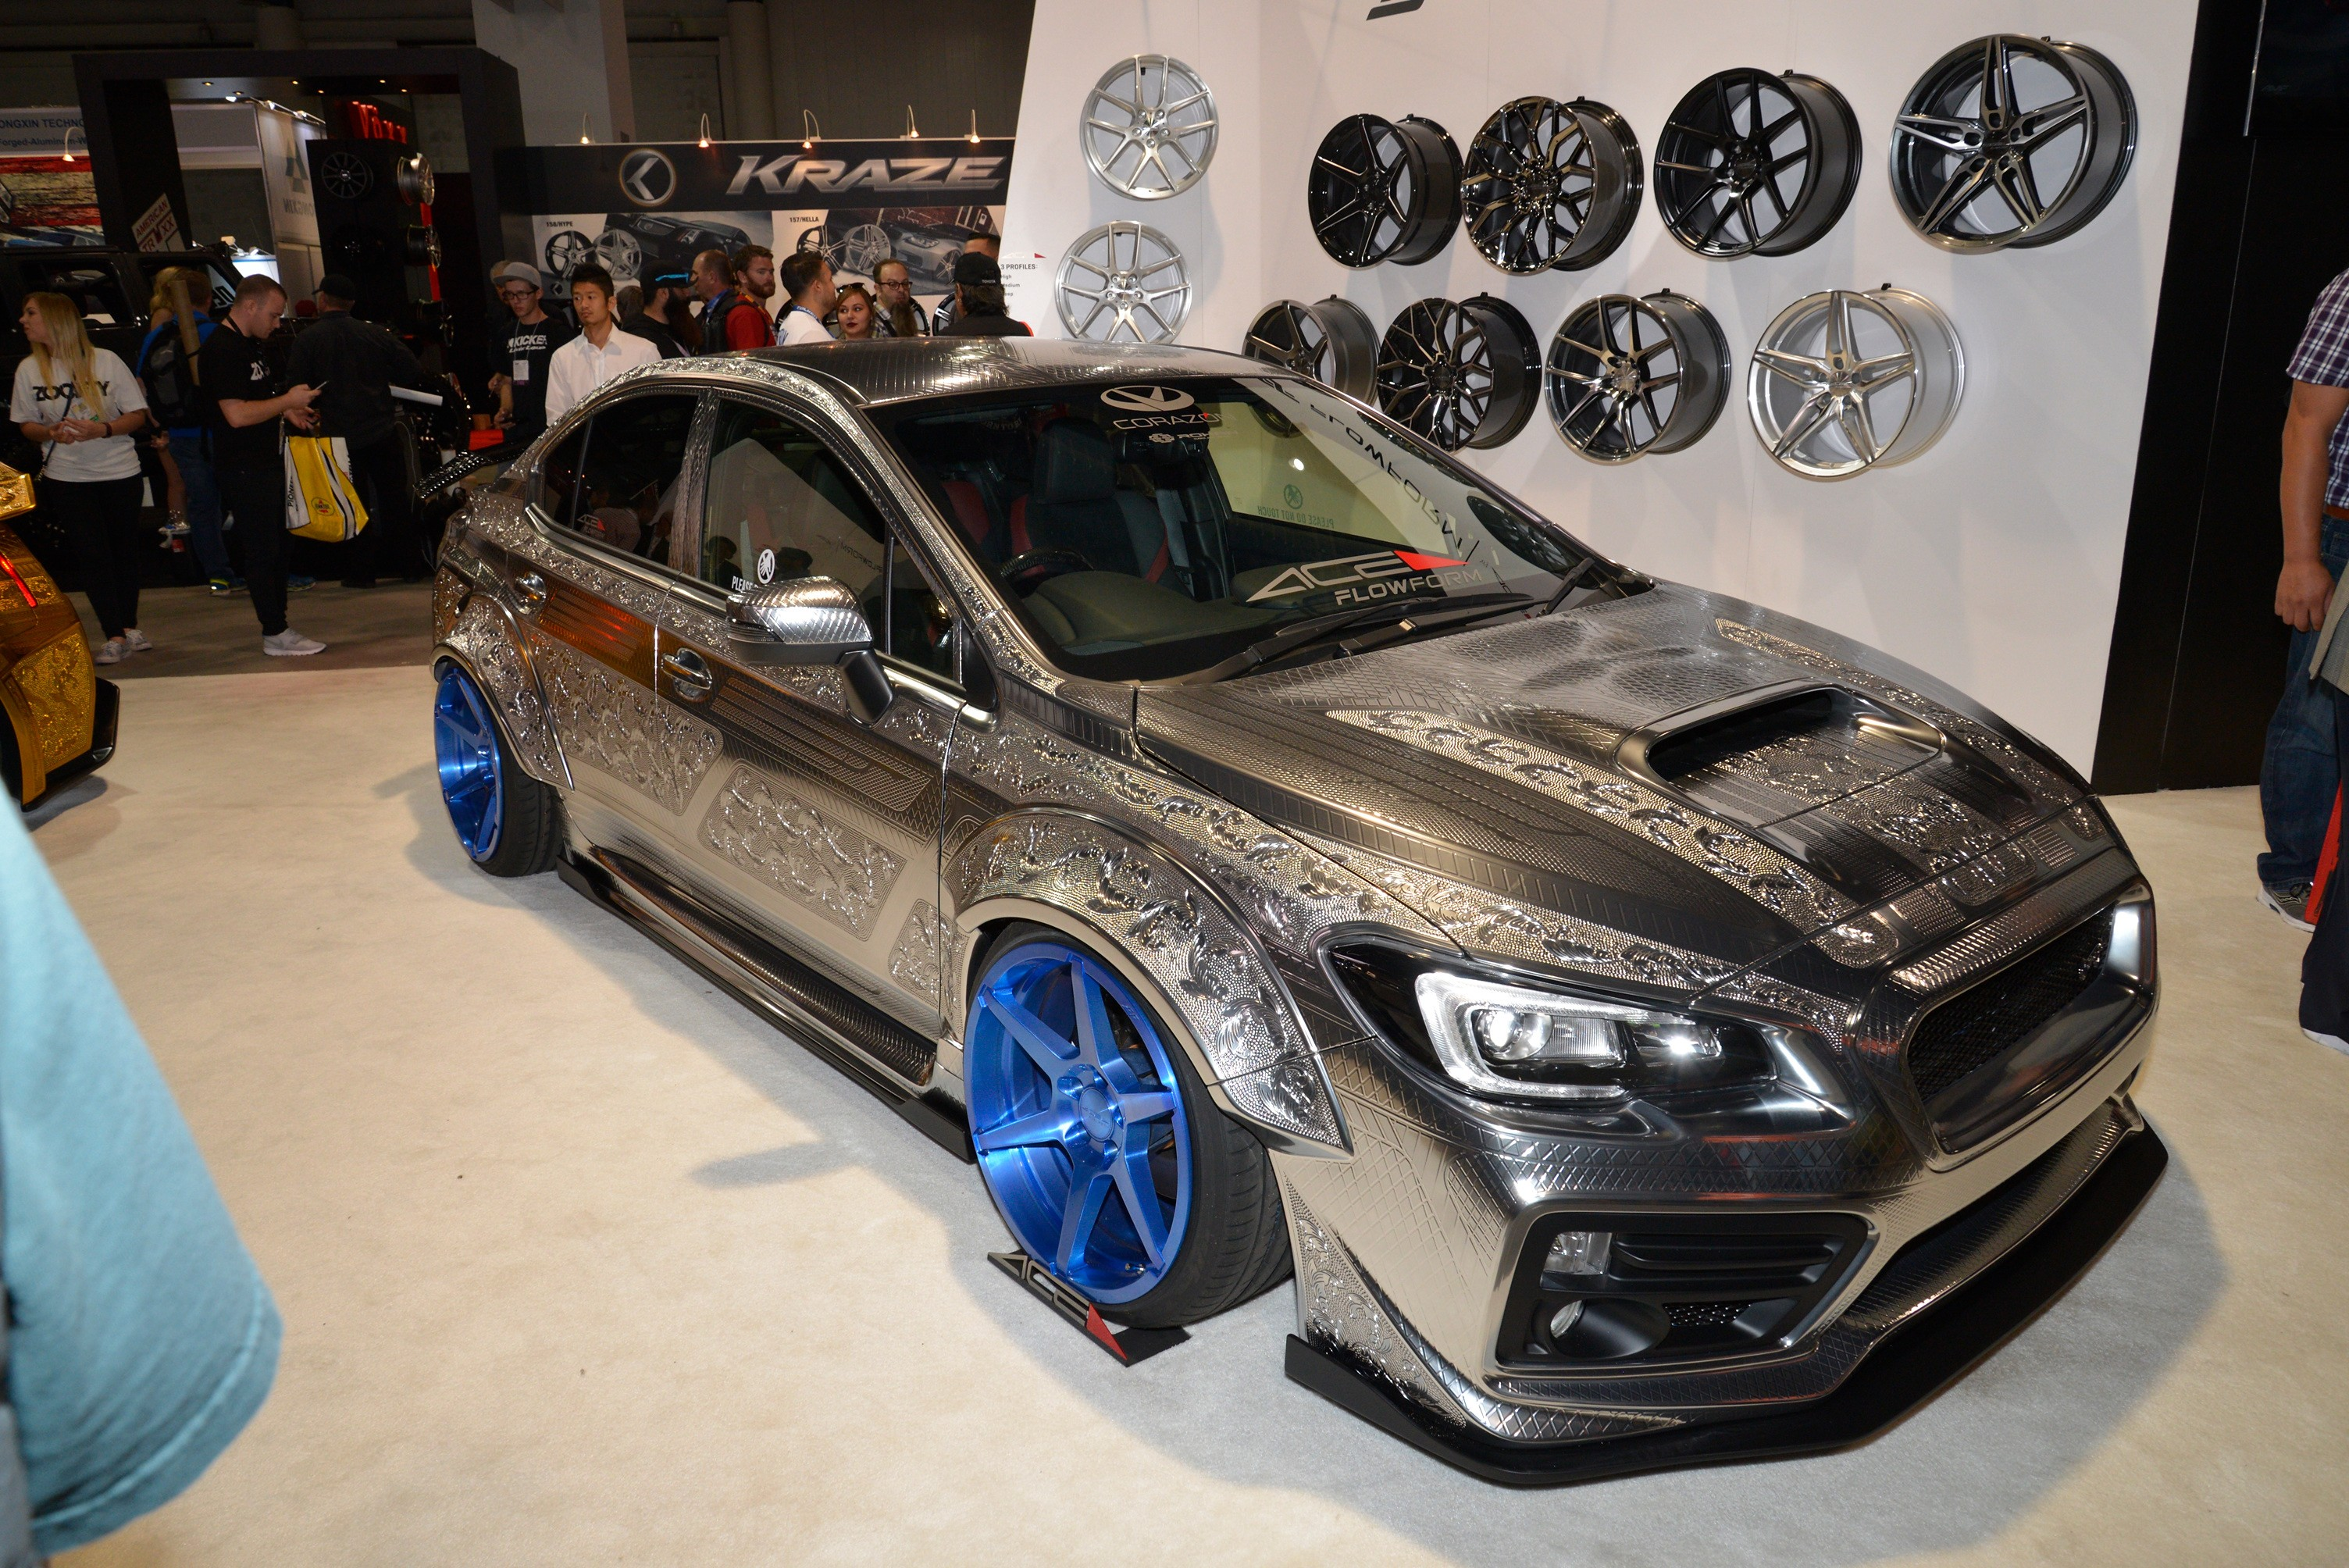 Engraved Subaru Wrx Sti With Widebody Kit Is Pure Art At